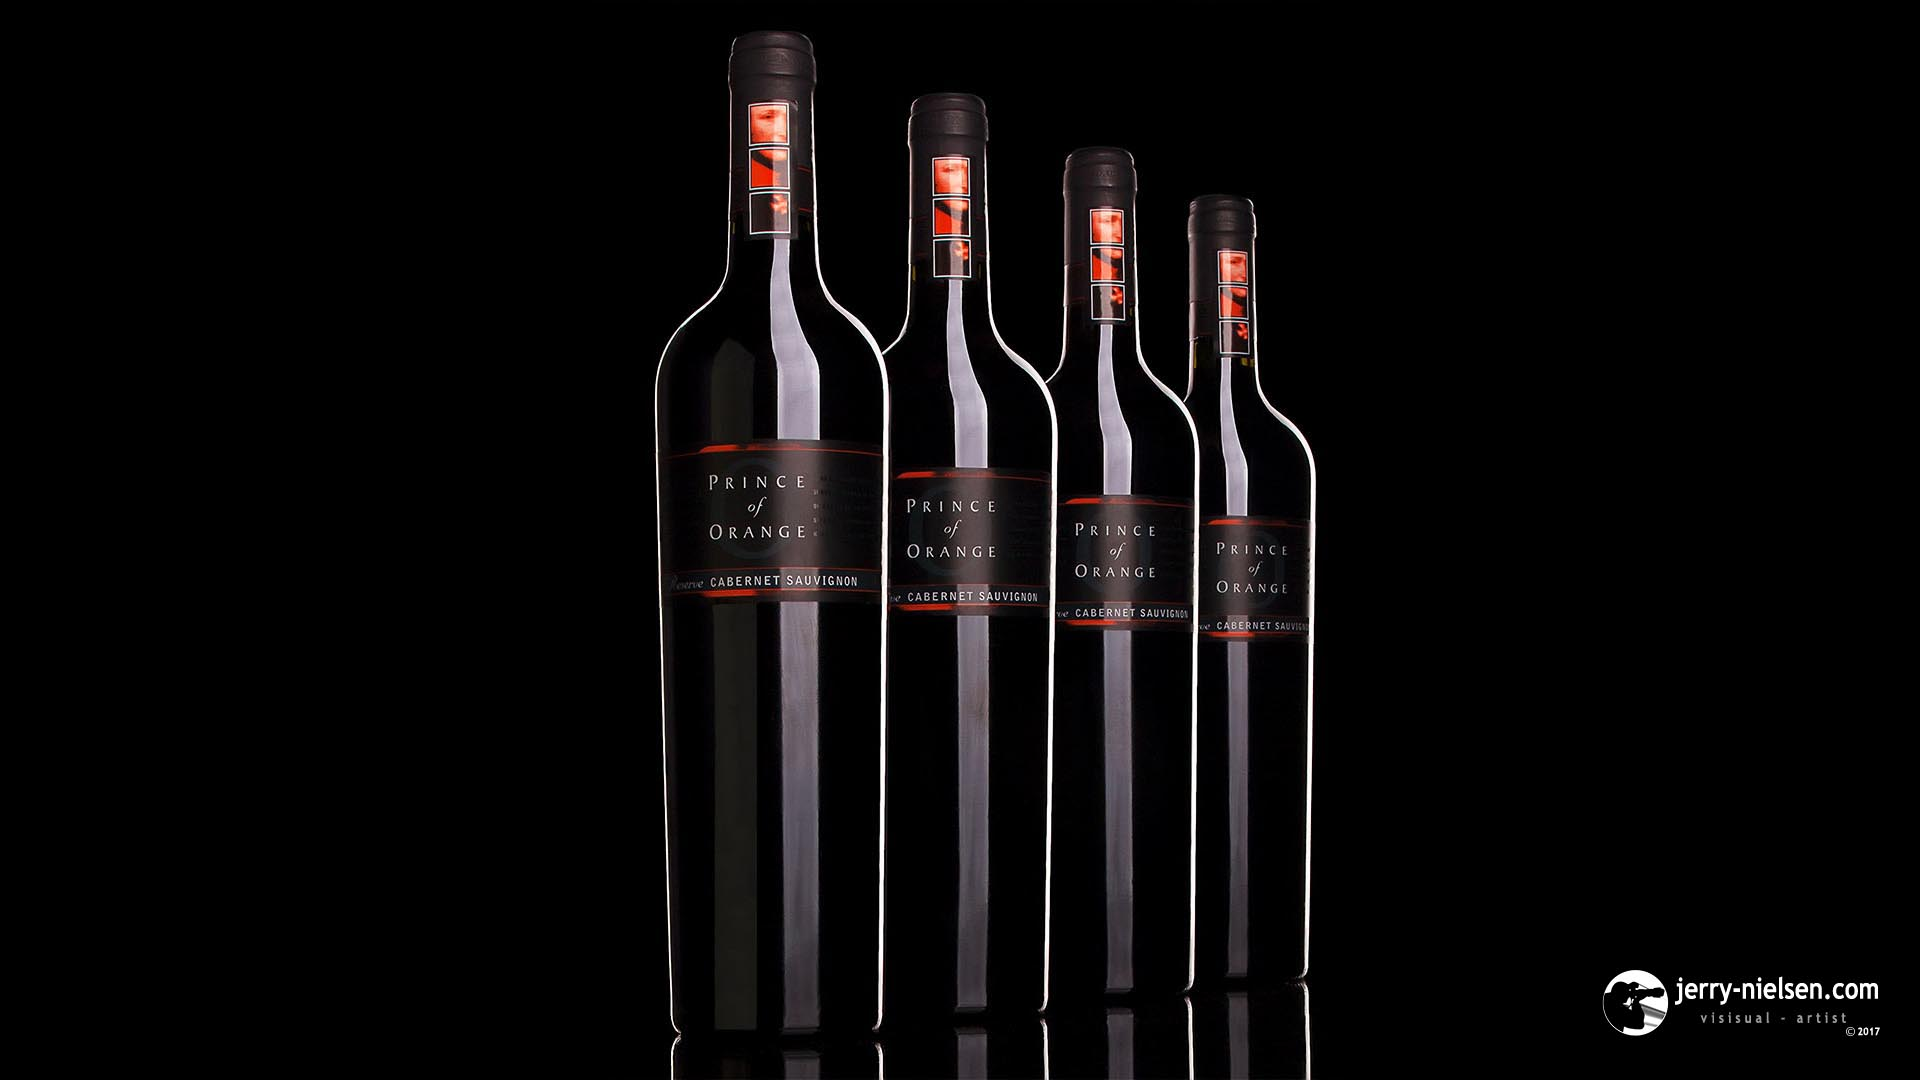 Prince of Orange Red Wine Bottles